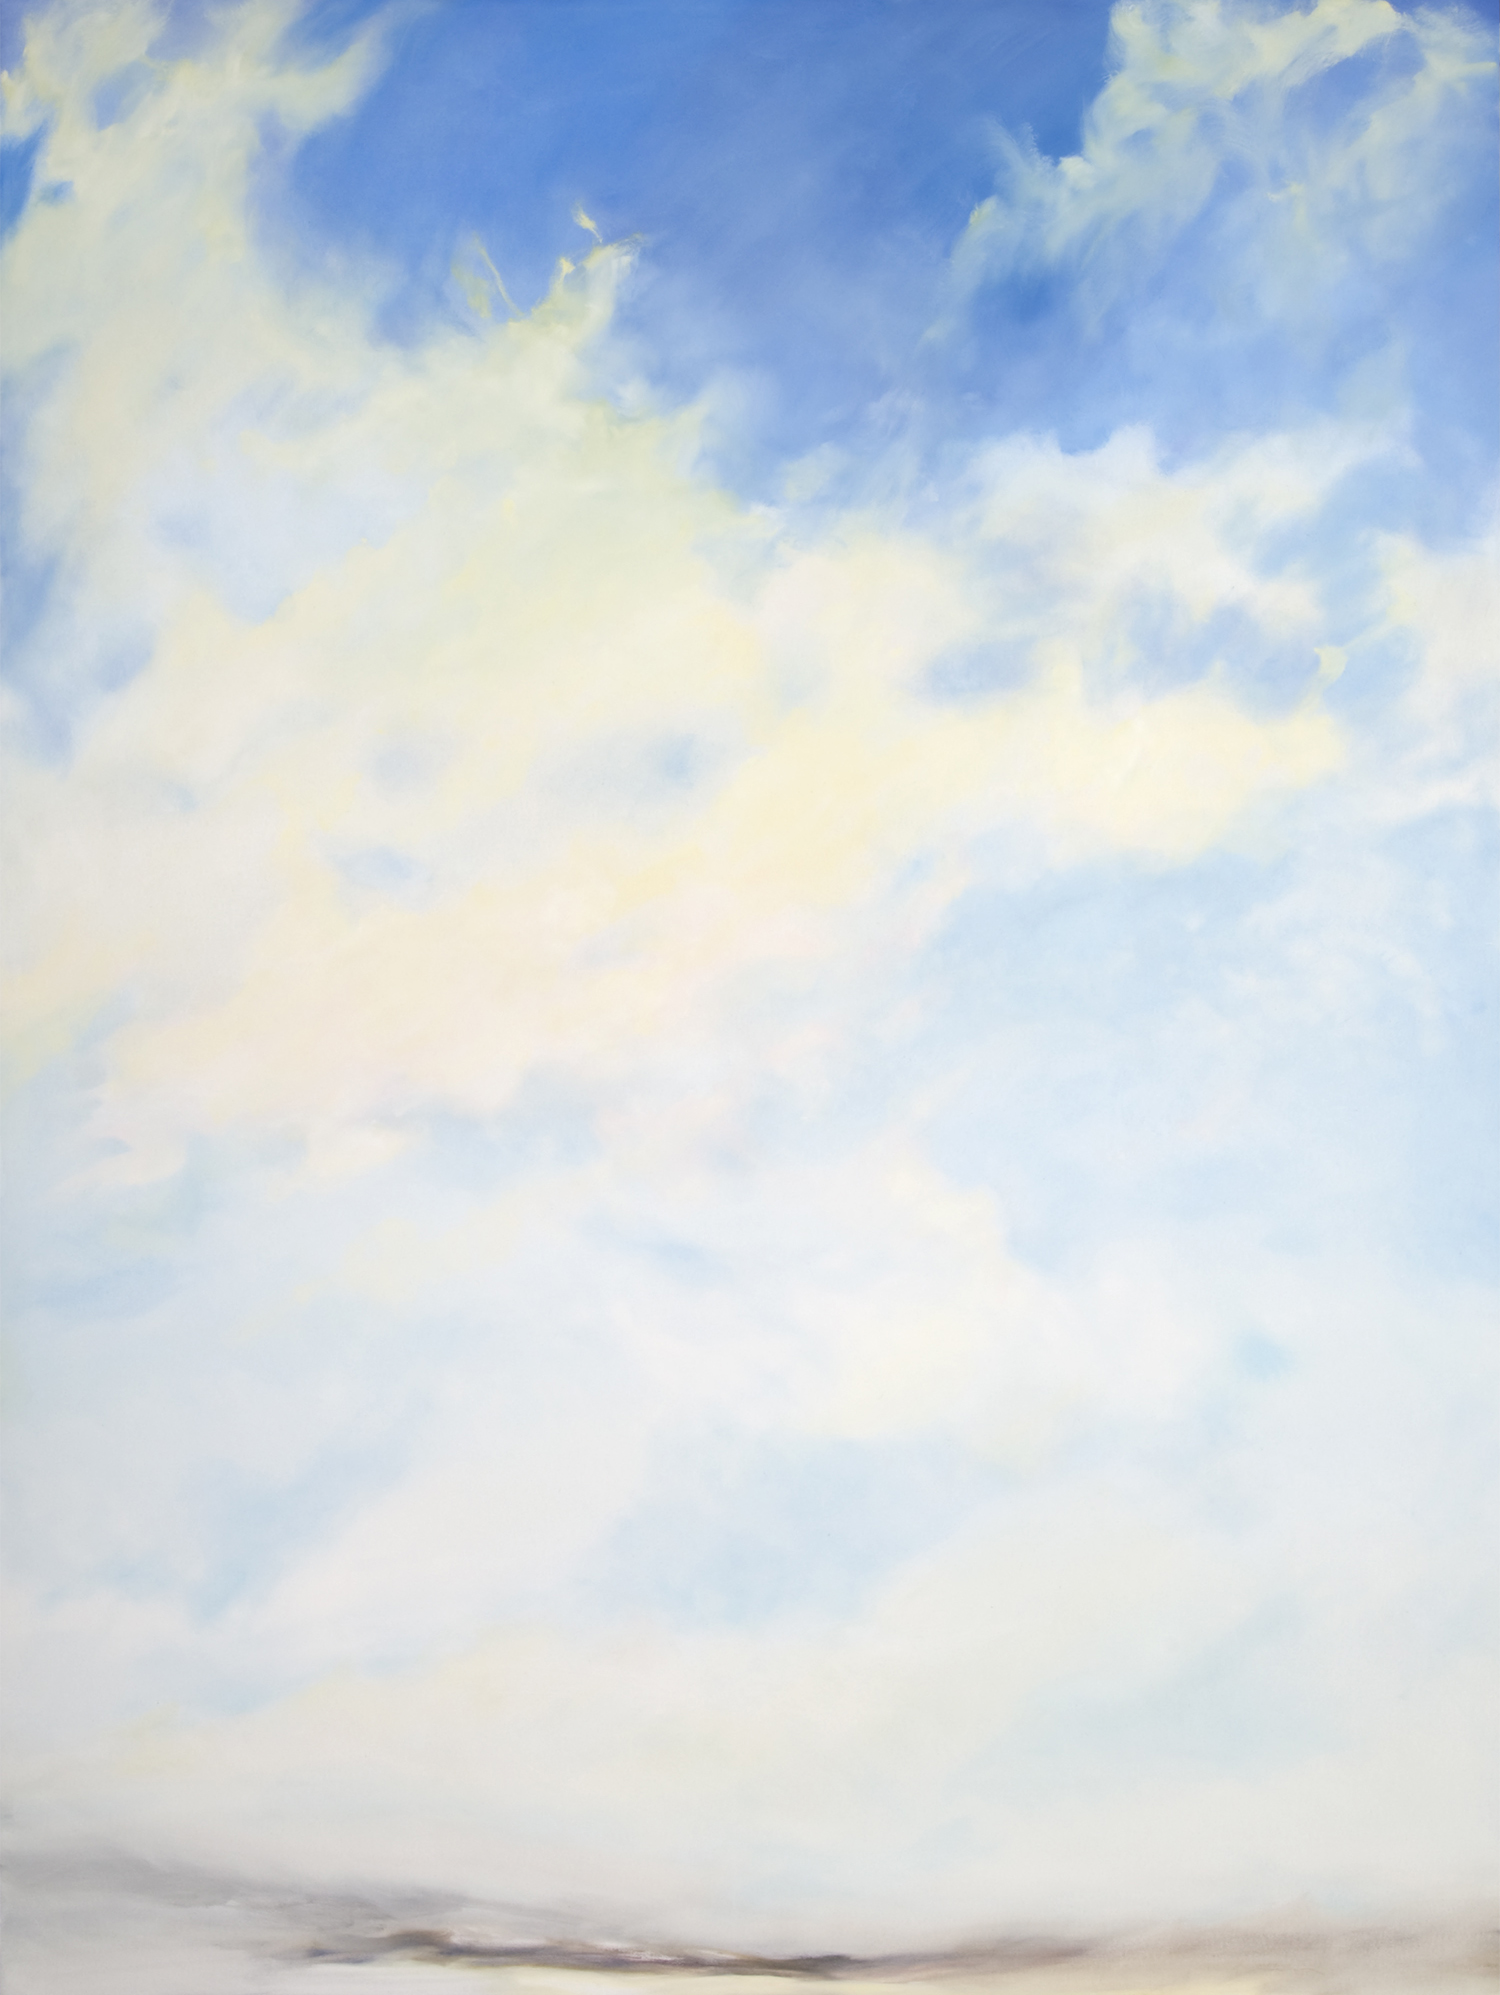 Winter Sky l , 2010, Oil on Canvas, 96 x 72 inches (UNB Permanent Collection, Fredericton, NB)